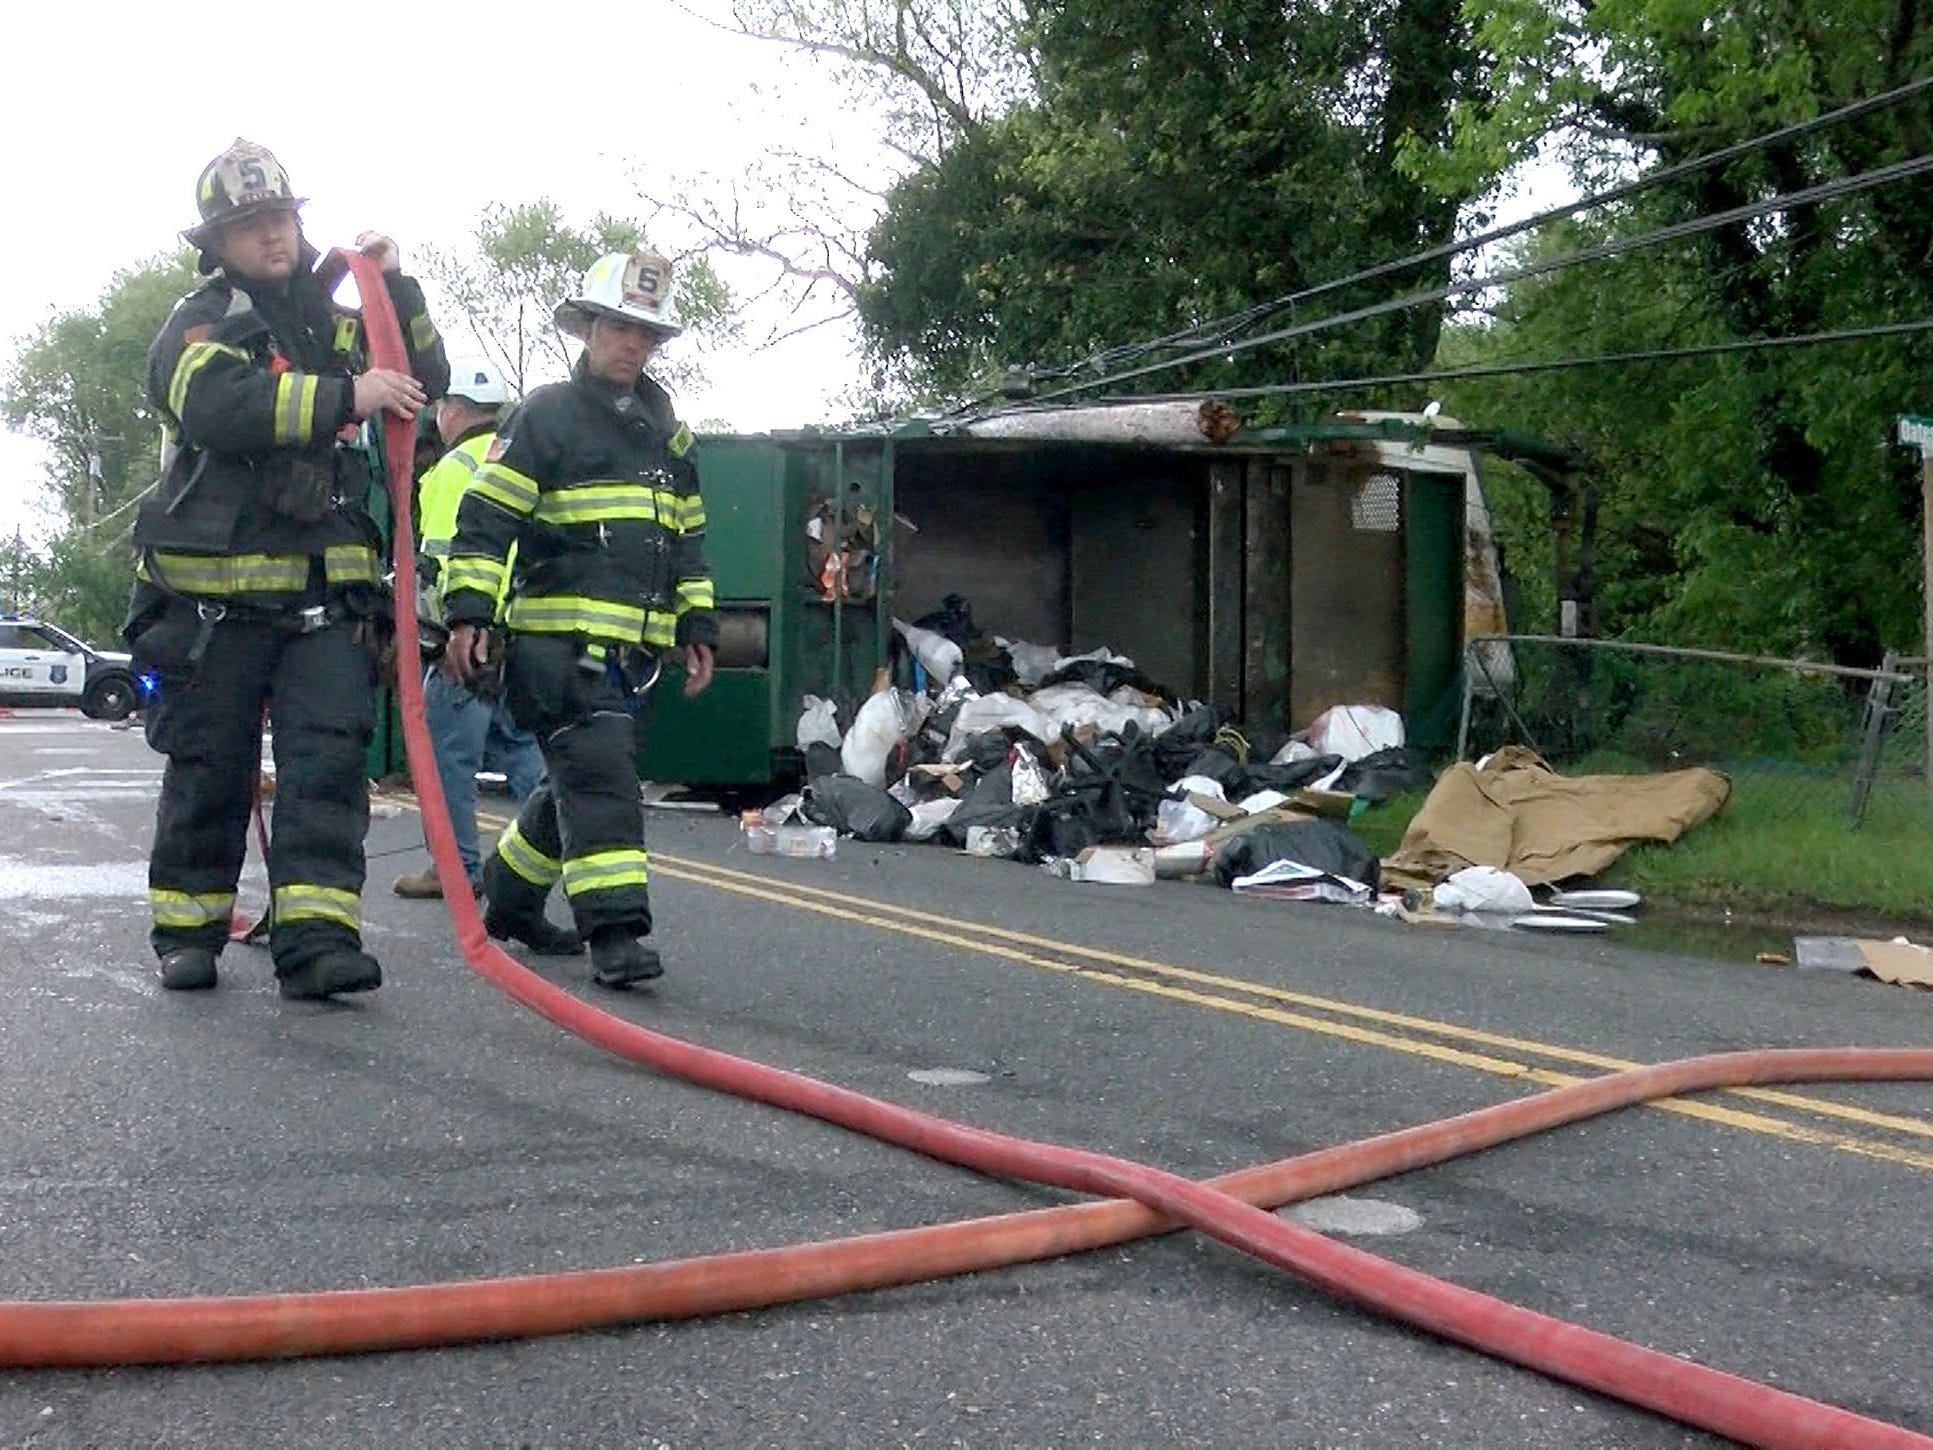 Howell Township firefighters pick up hose after a Waste Management garbage truck overturned on West Farms Road at Casino Drive in the Township Tuesday morning, May 14, 2019.  At least two people were injured in the collison that spilled garbage on the roadway and cracked a poer pole.